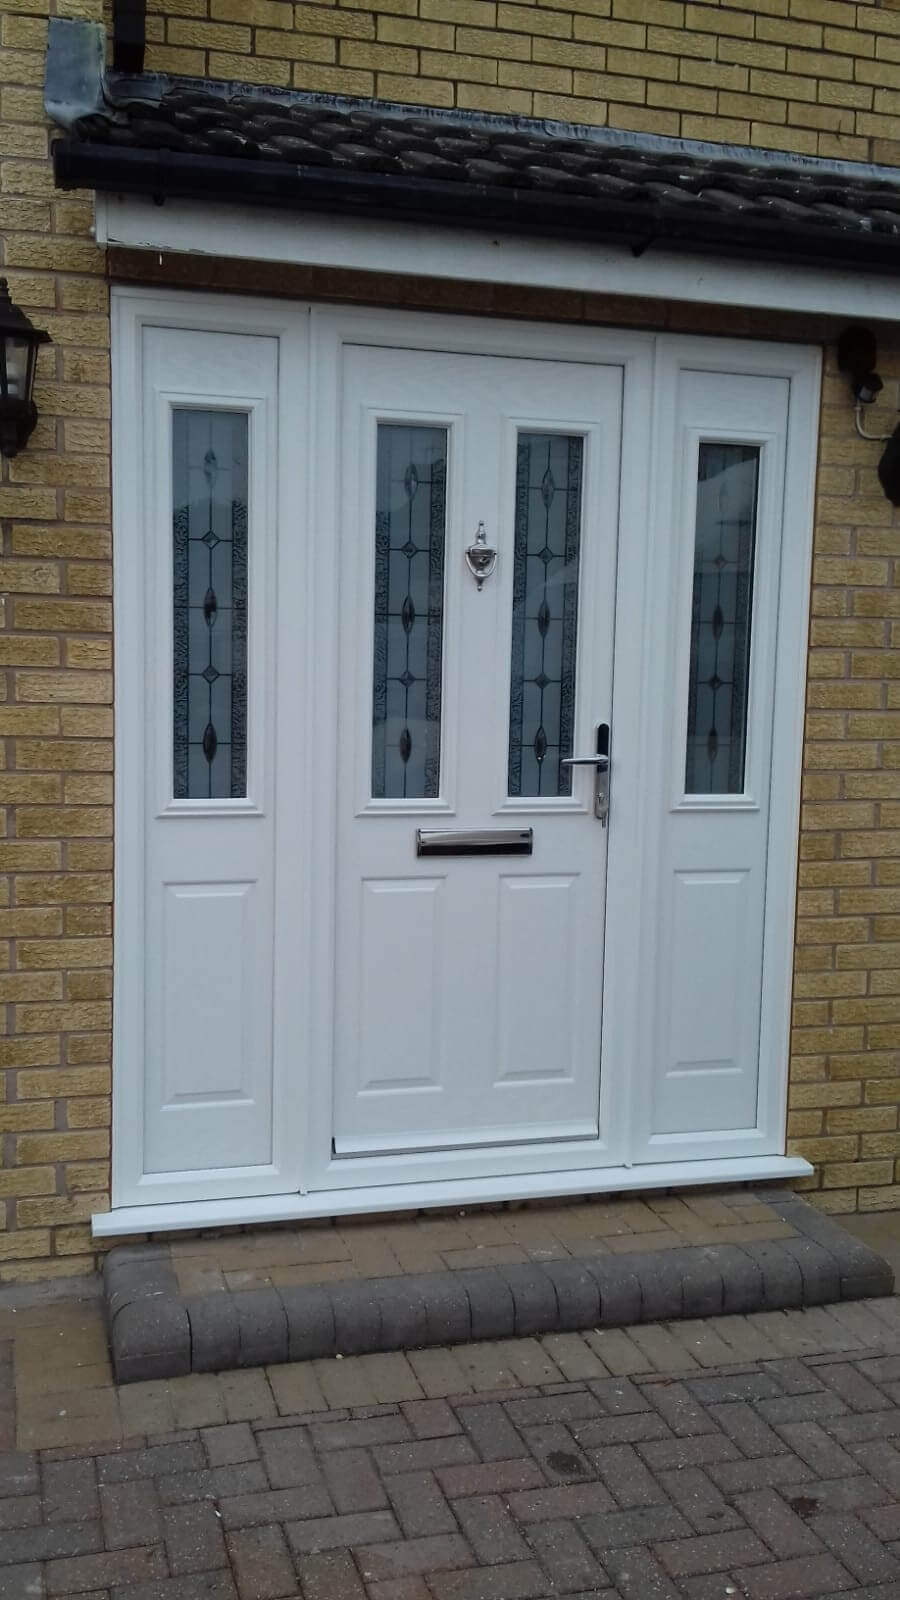 pvc, upvc, pvcu, front door, supply, install, celsius home improvenments, southport, front door replacement, new front door, front door southport